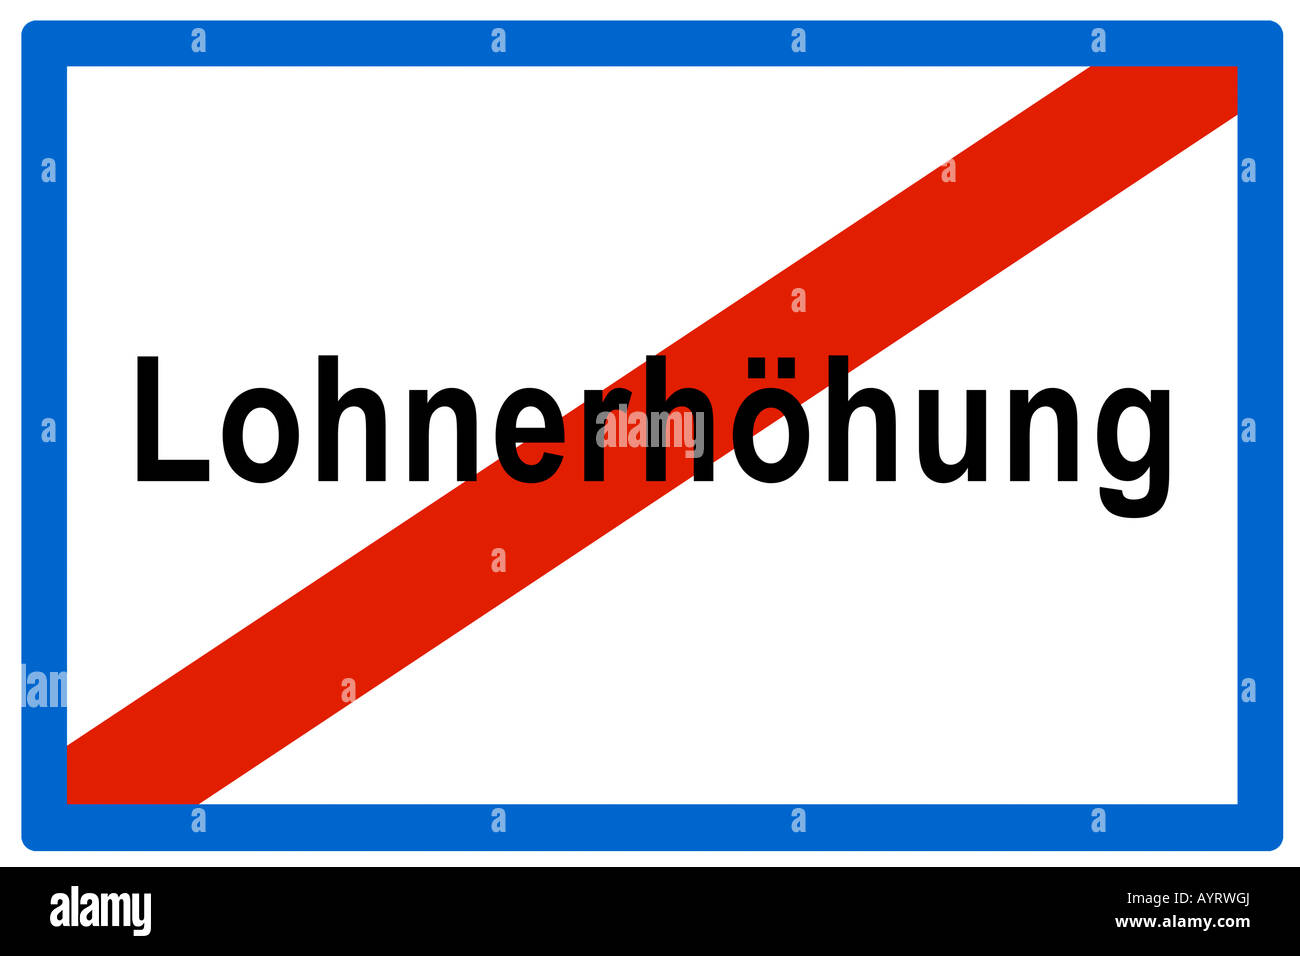 Symbolic picture, no more Lohnerhoehung (Ger. for wage hikes), and end to raised wages - Stock Image